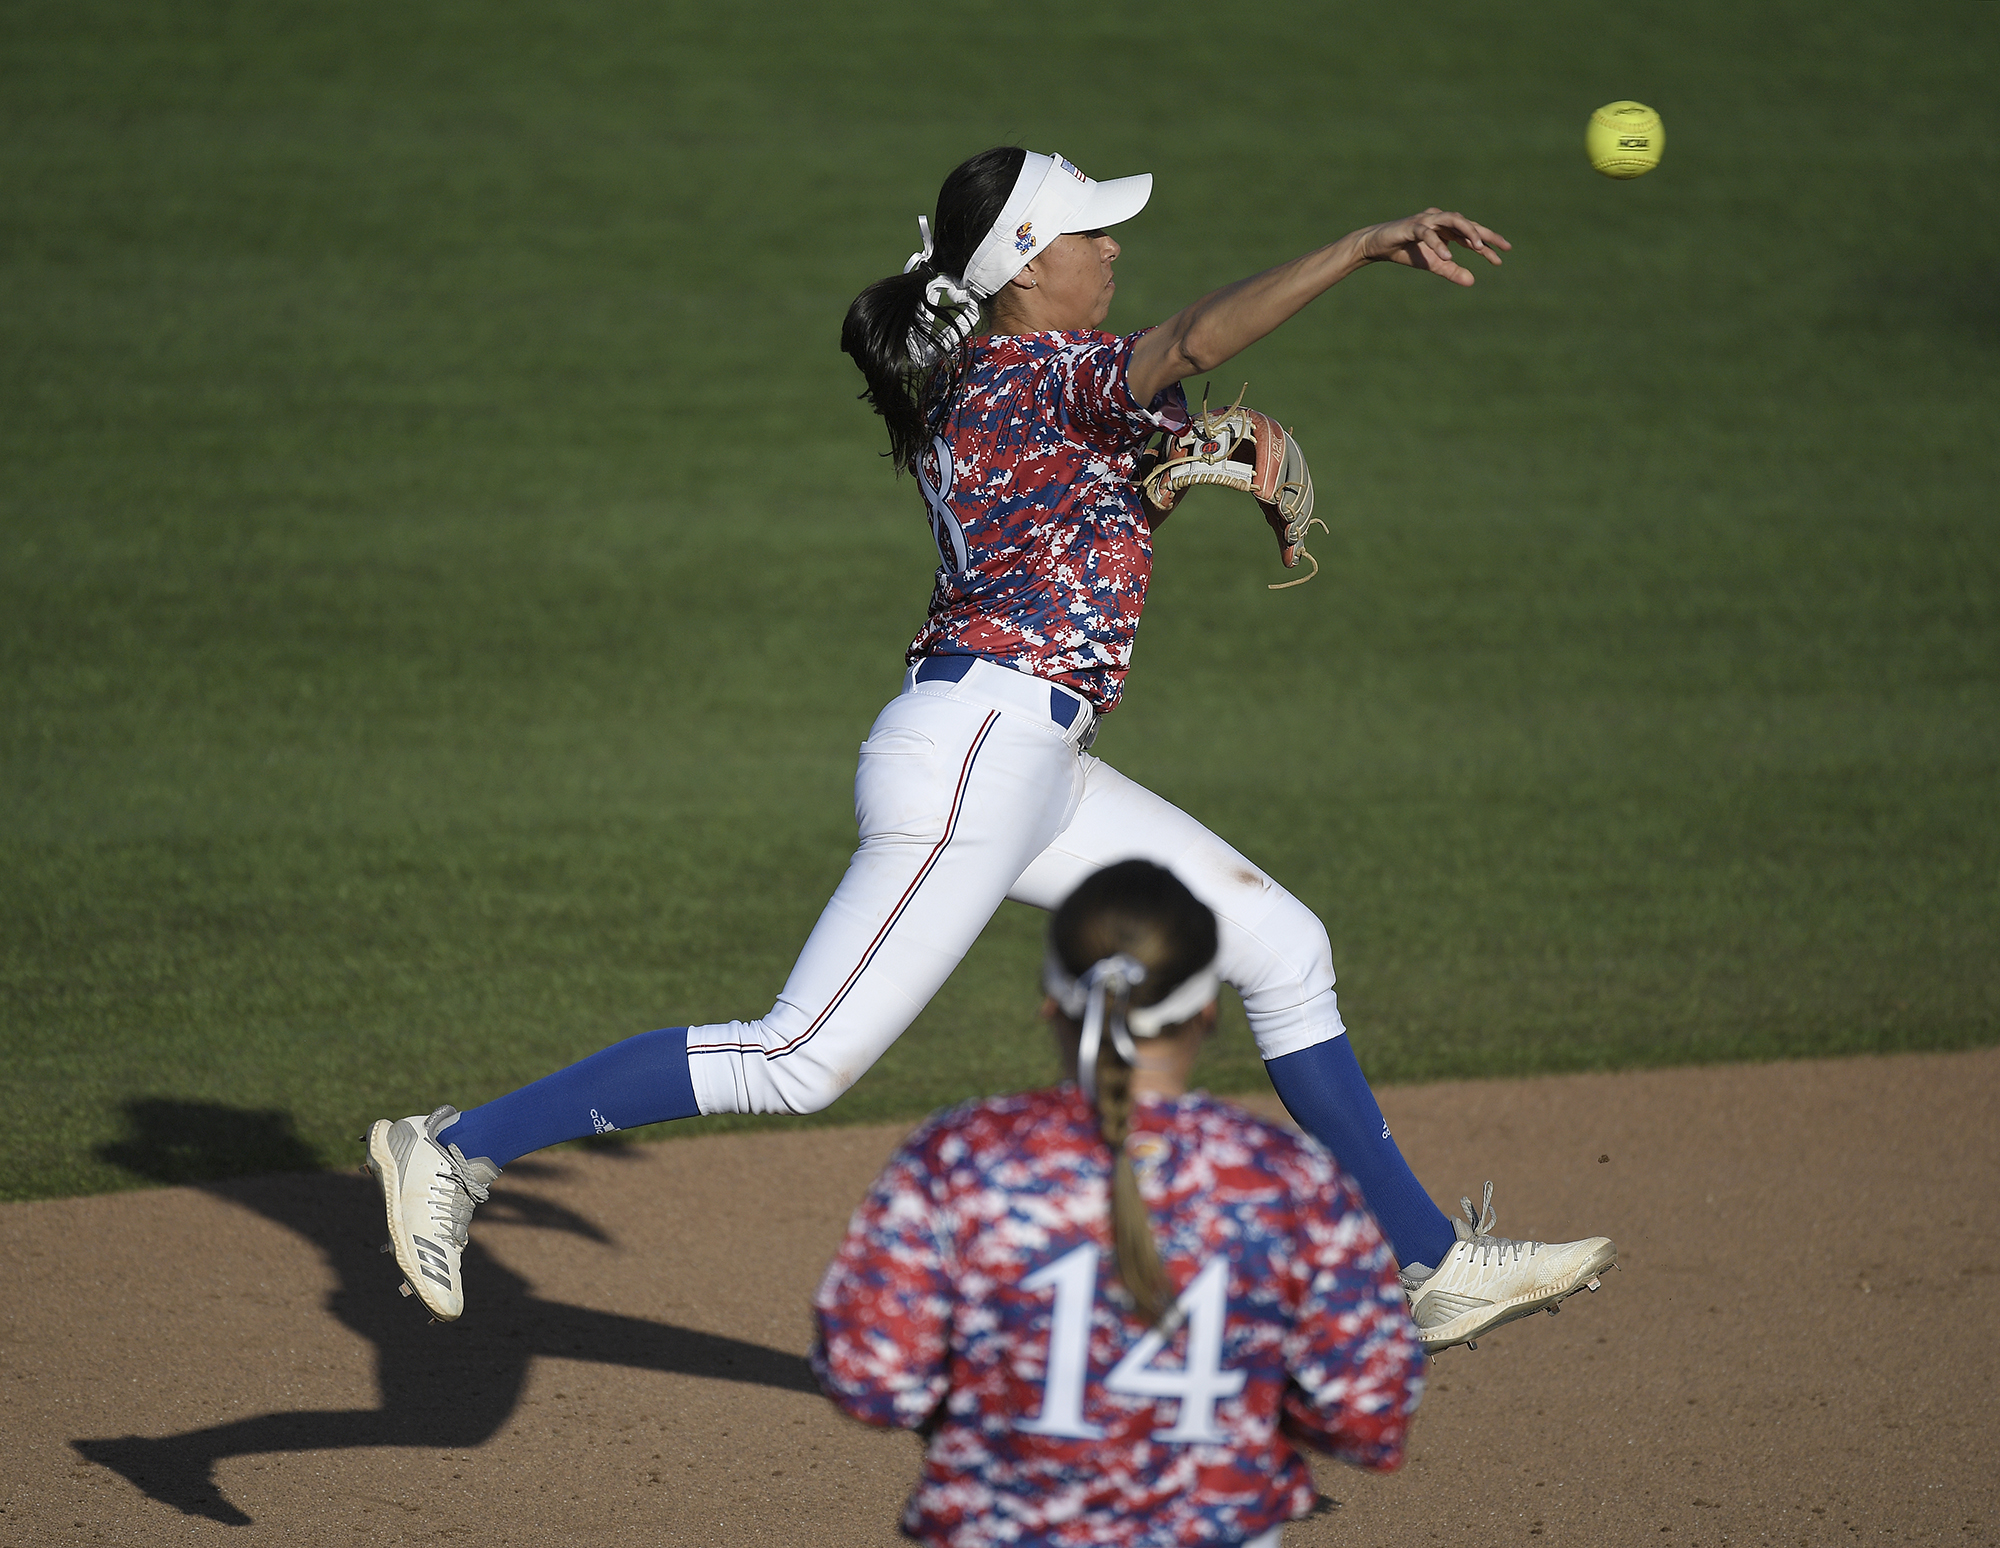 Miranda Rodriguez fired the ball to first.